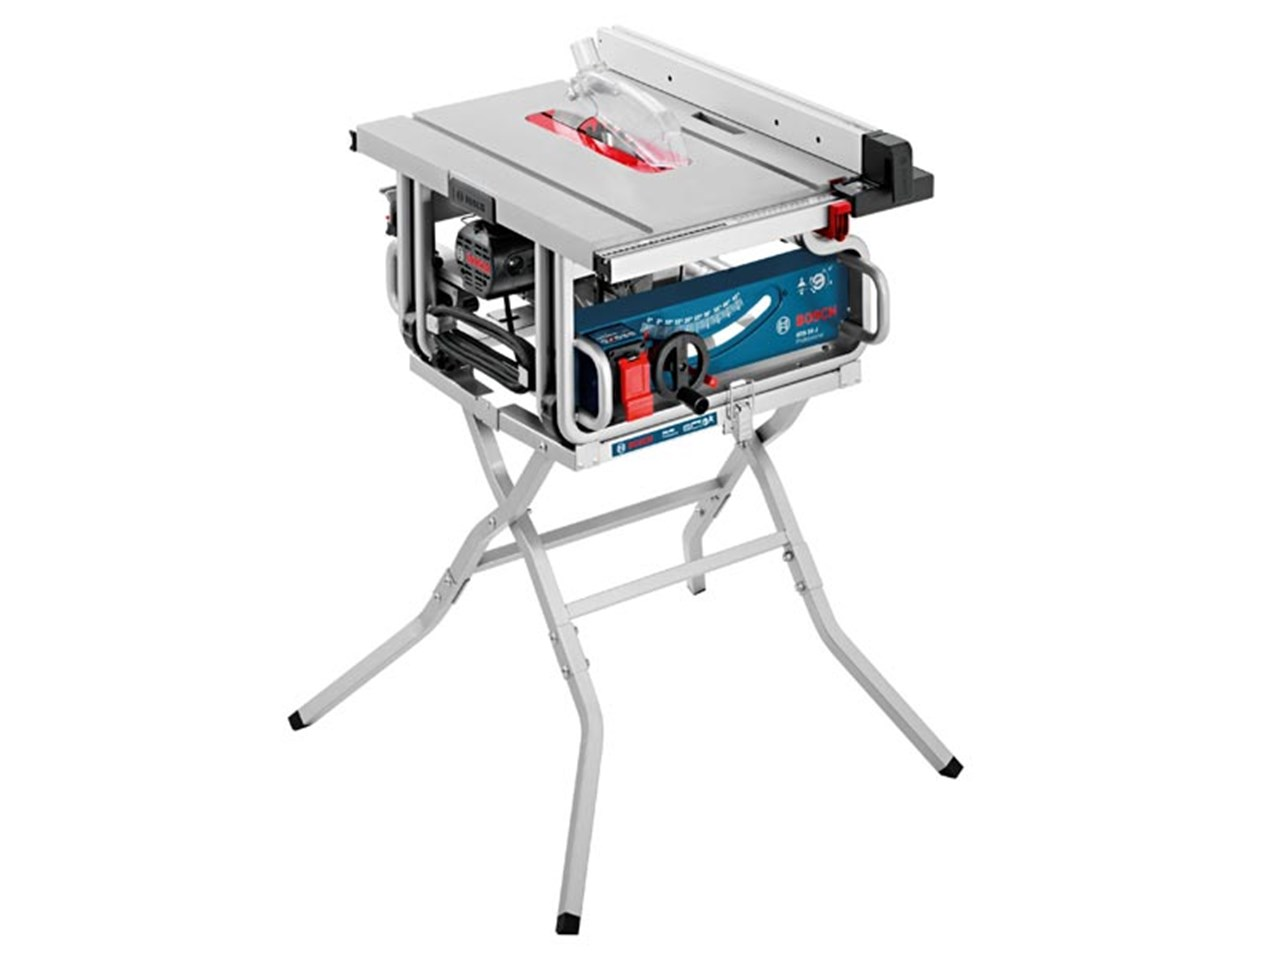 Bosch Gts10j2 Gta 600 240v 10in Portable Table Saw With